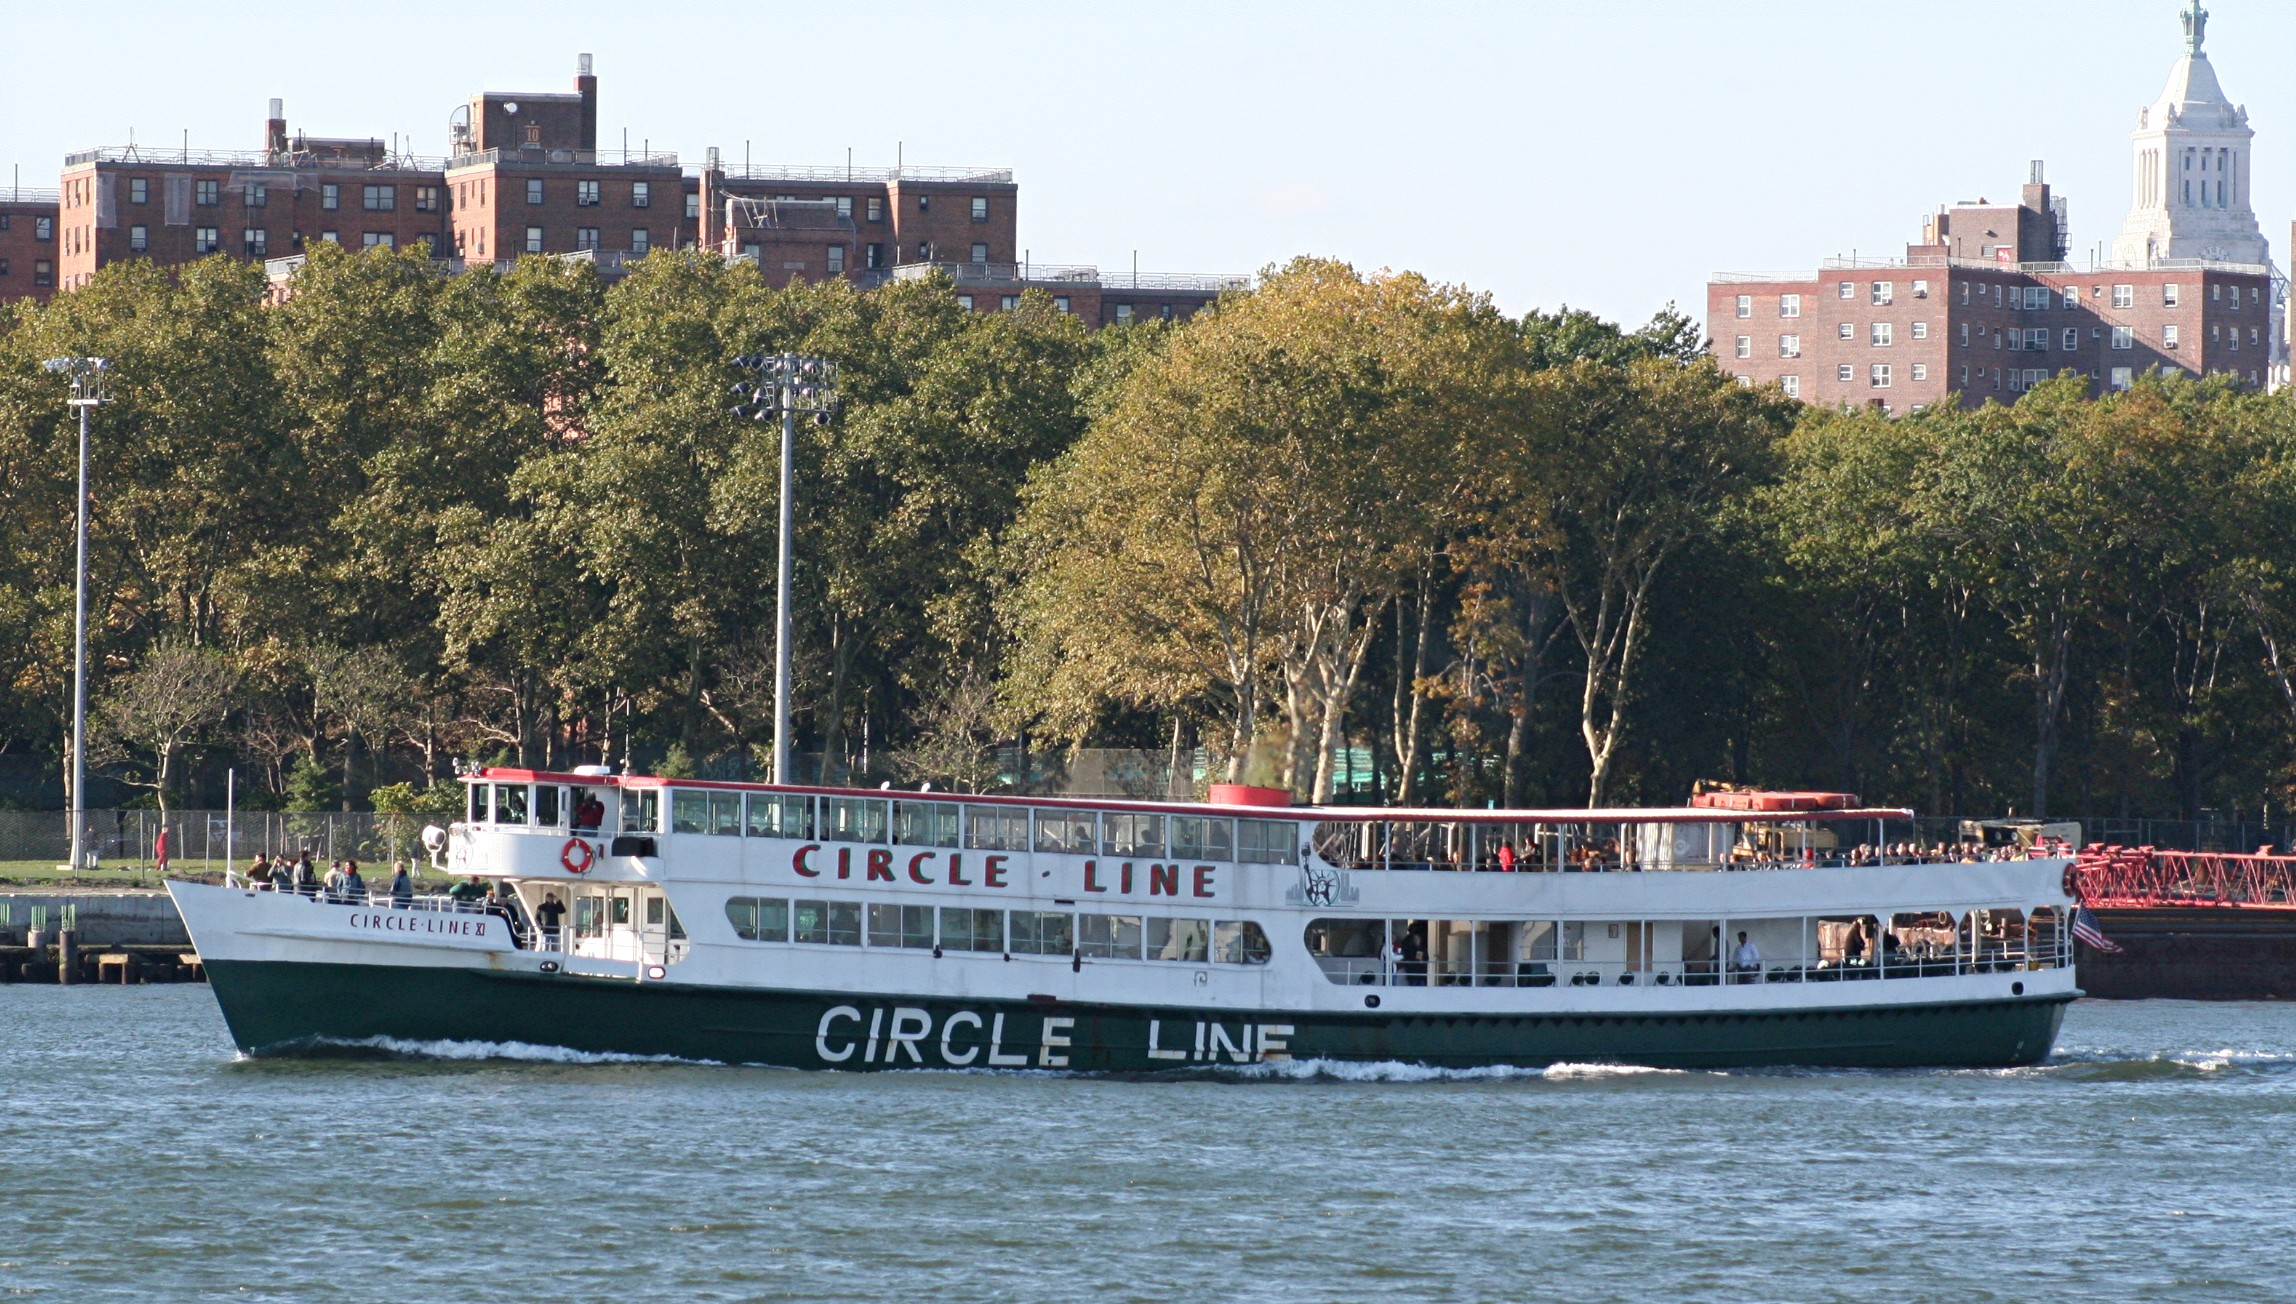 CIRCLE LINE Sightseeing Cruises - Wikipedia, the free encyclopedia